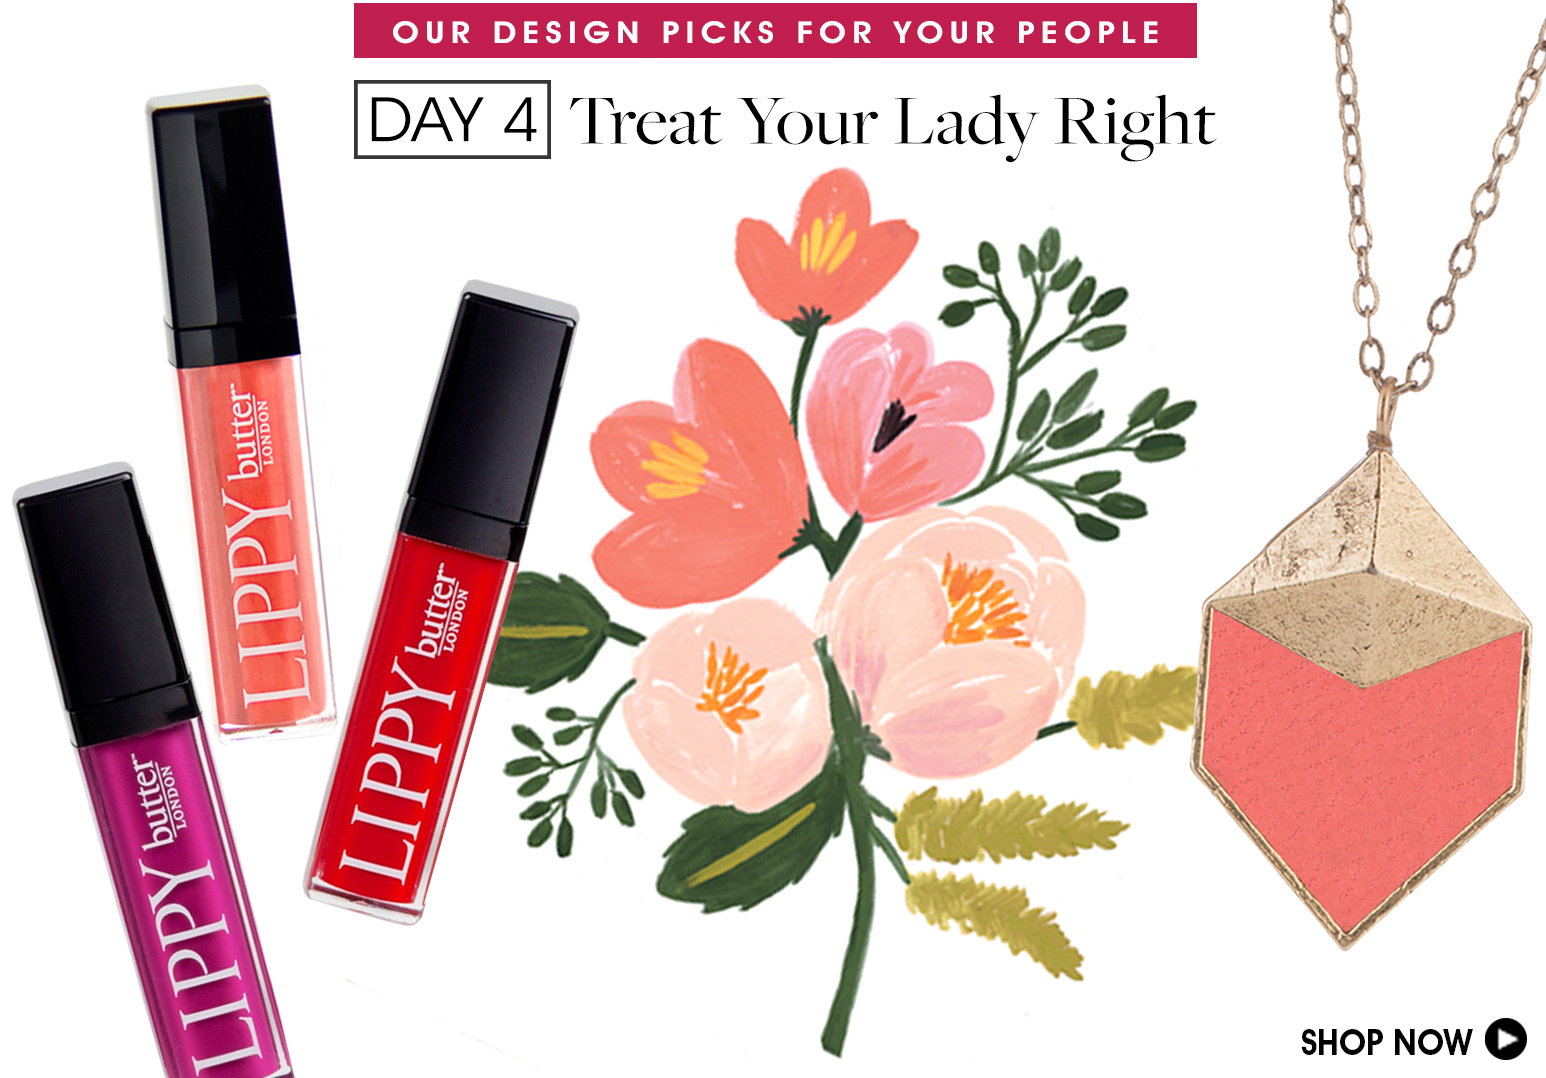 - 12 Days of Gifting - Day 3 Treat Your Lady Right